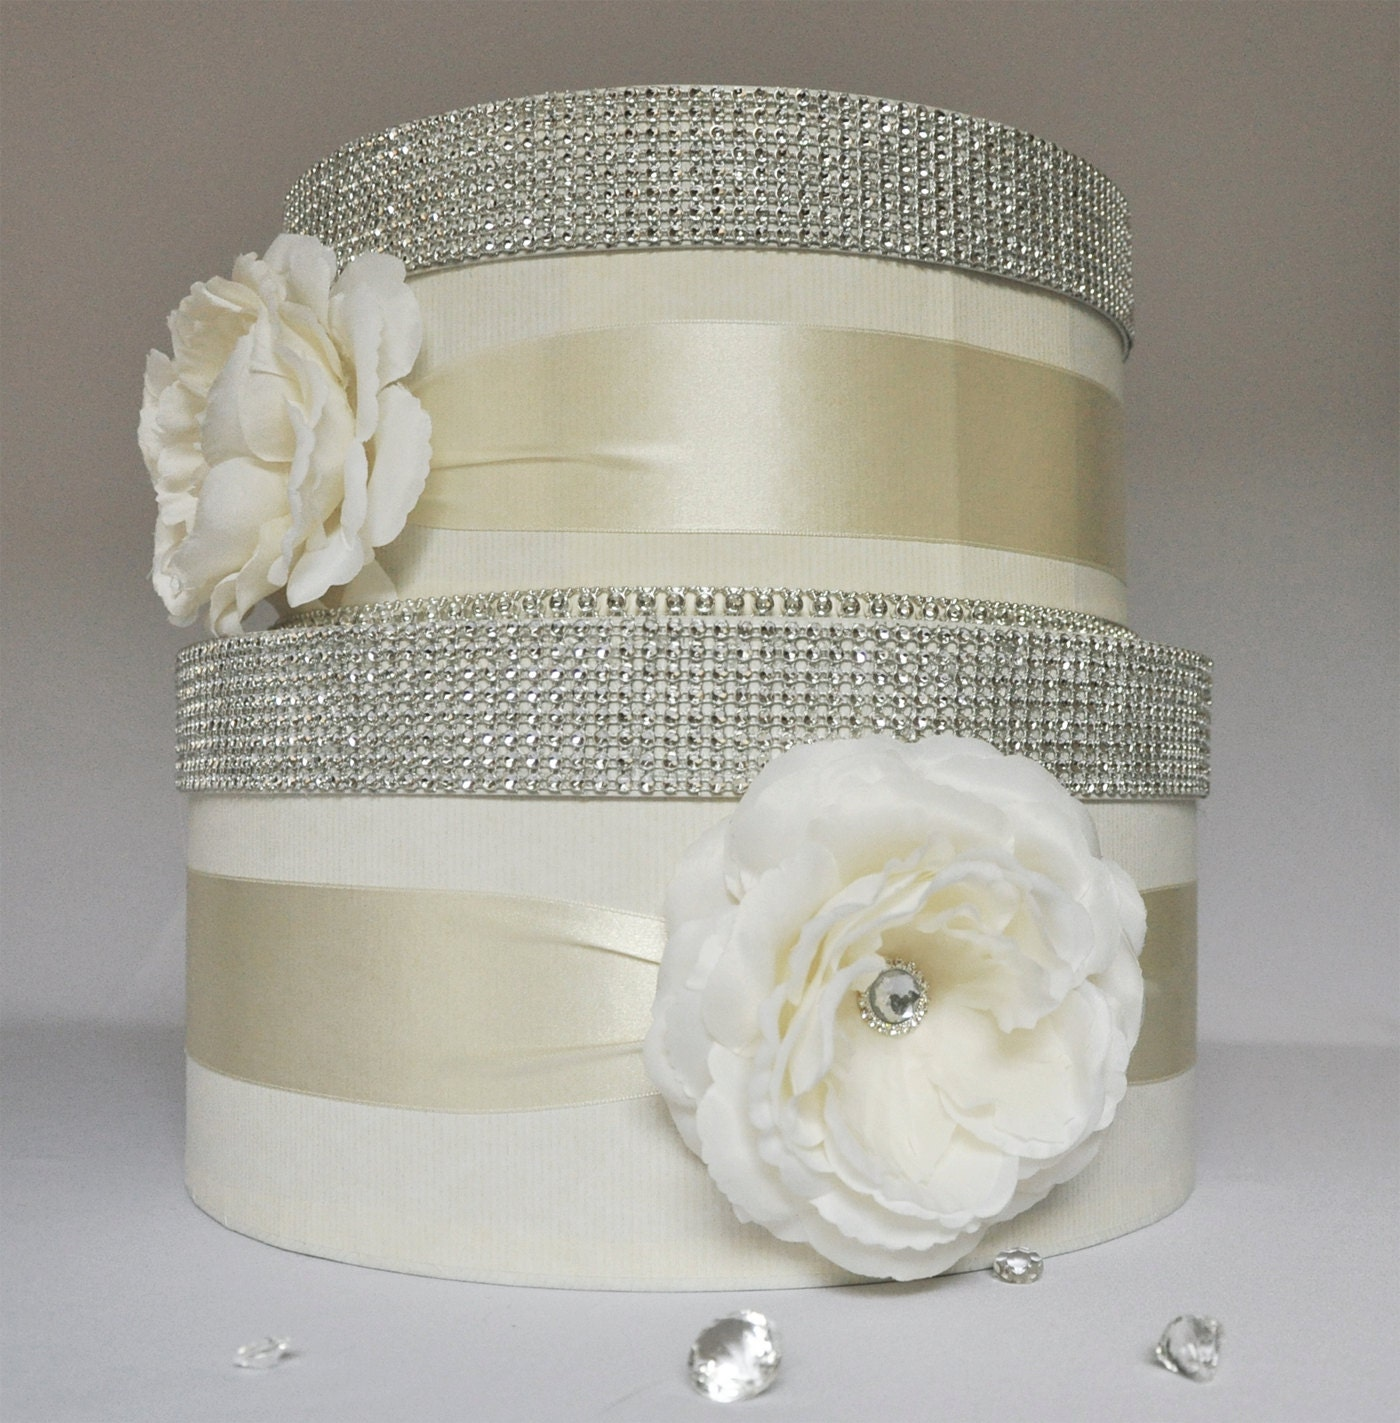 Wedding Money Box: Card Box / Wedding Box / Wedding Money Box 2 Tier